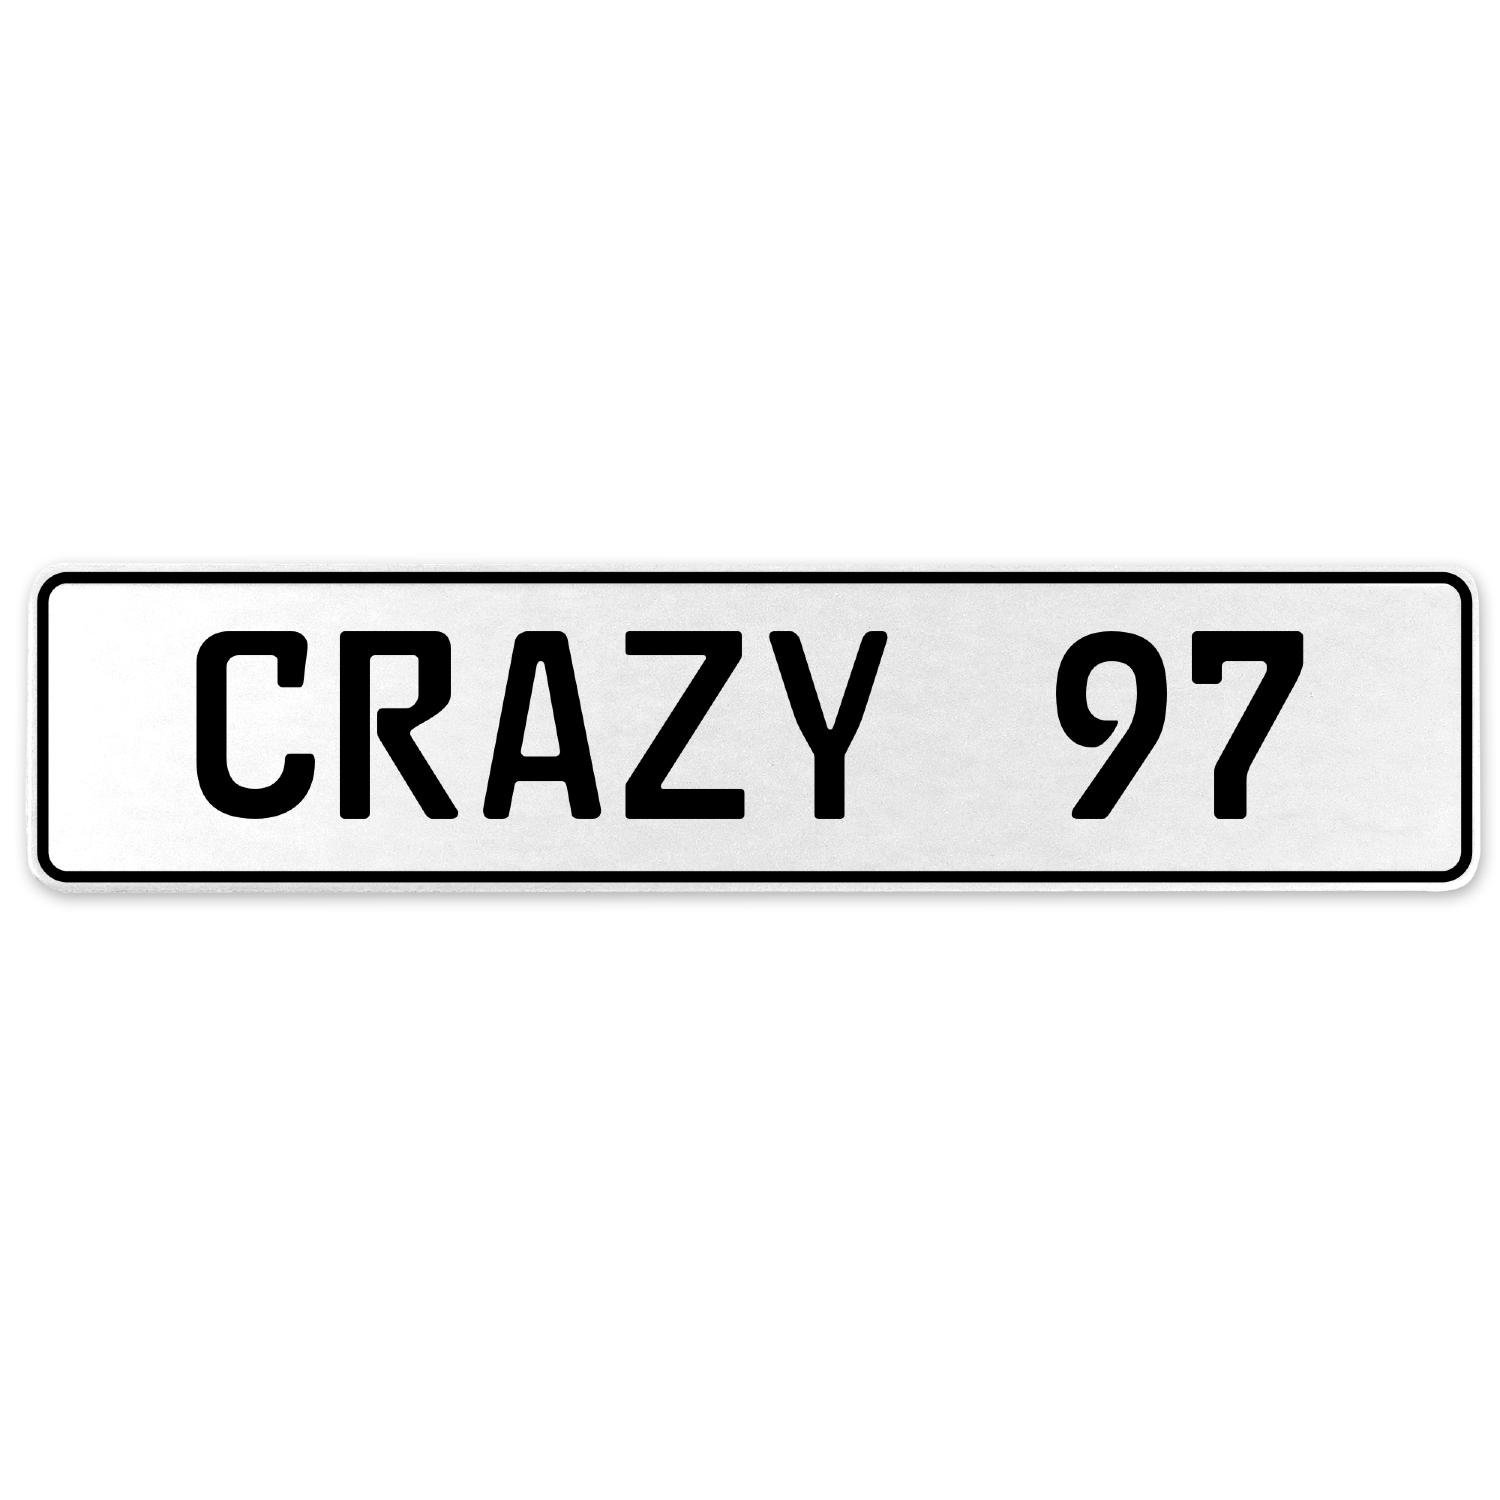 Vintage Parts 555684 Crazy 97 White Stamped Aluminum European License Plate